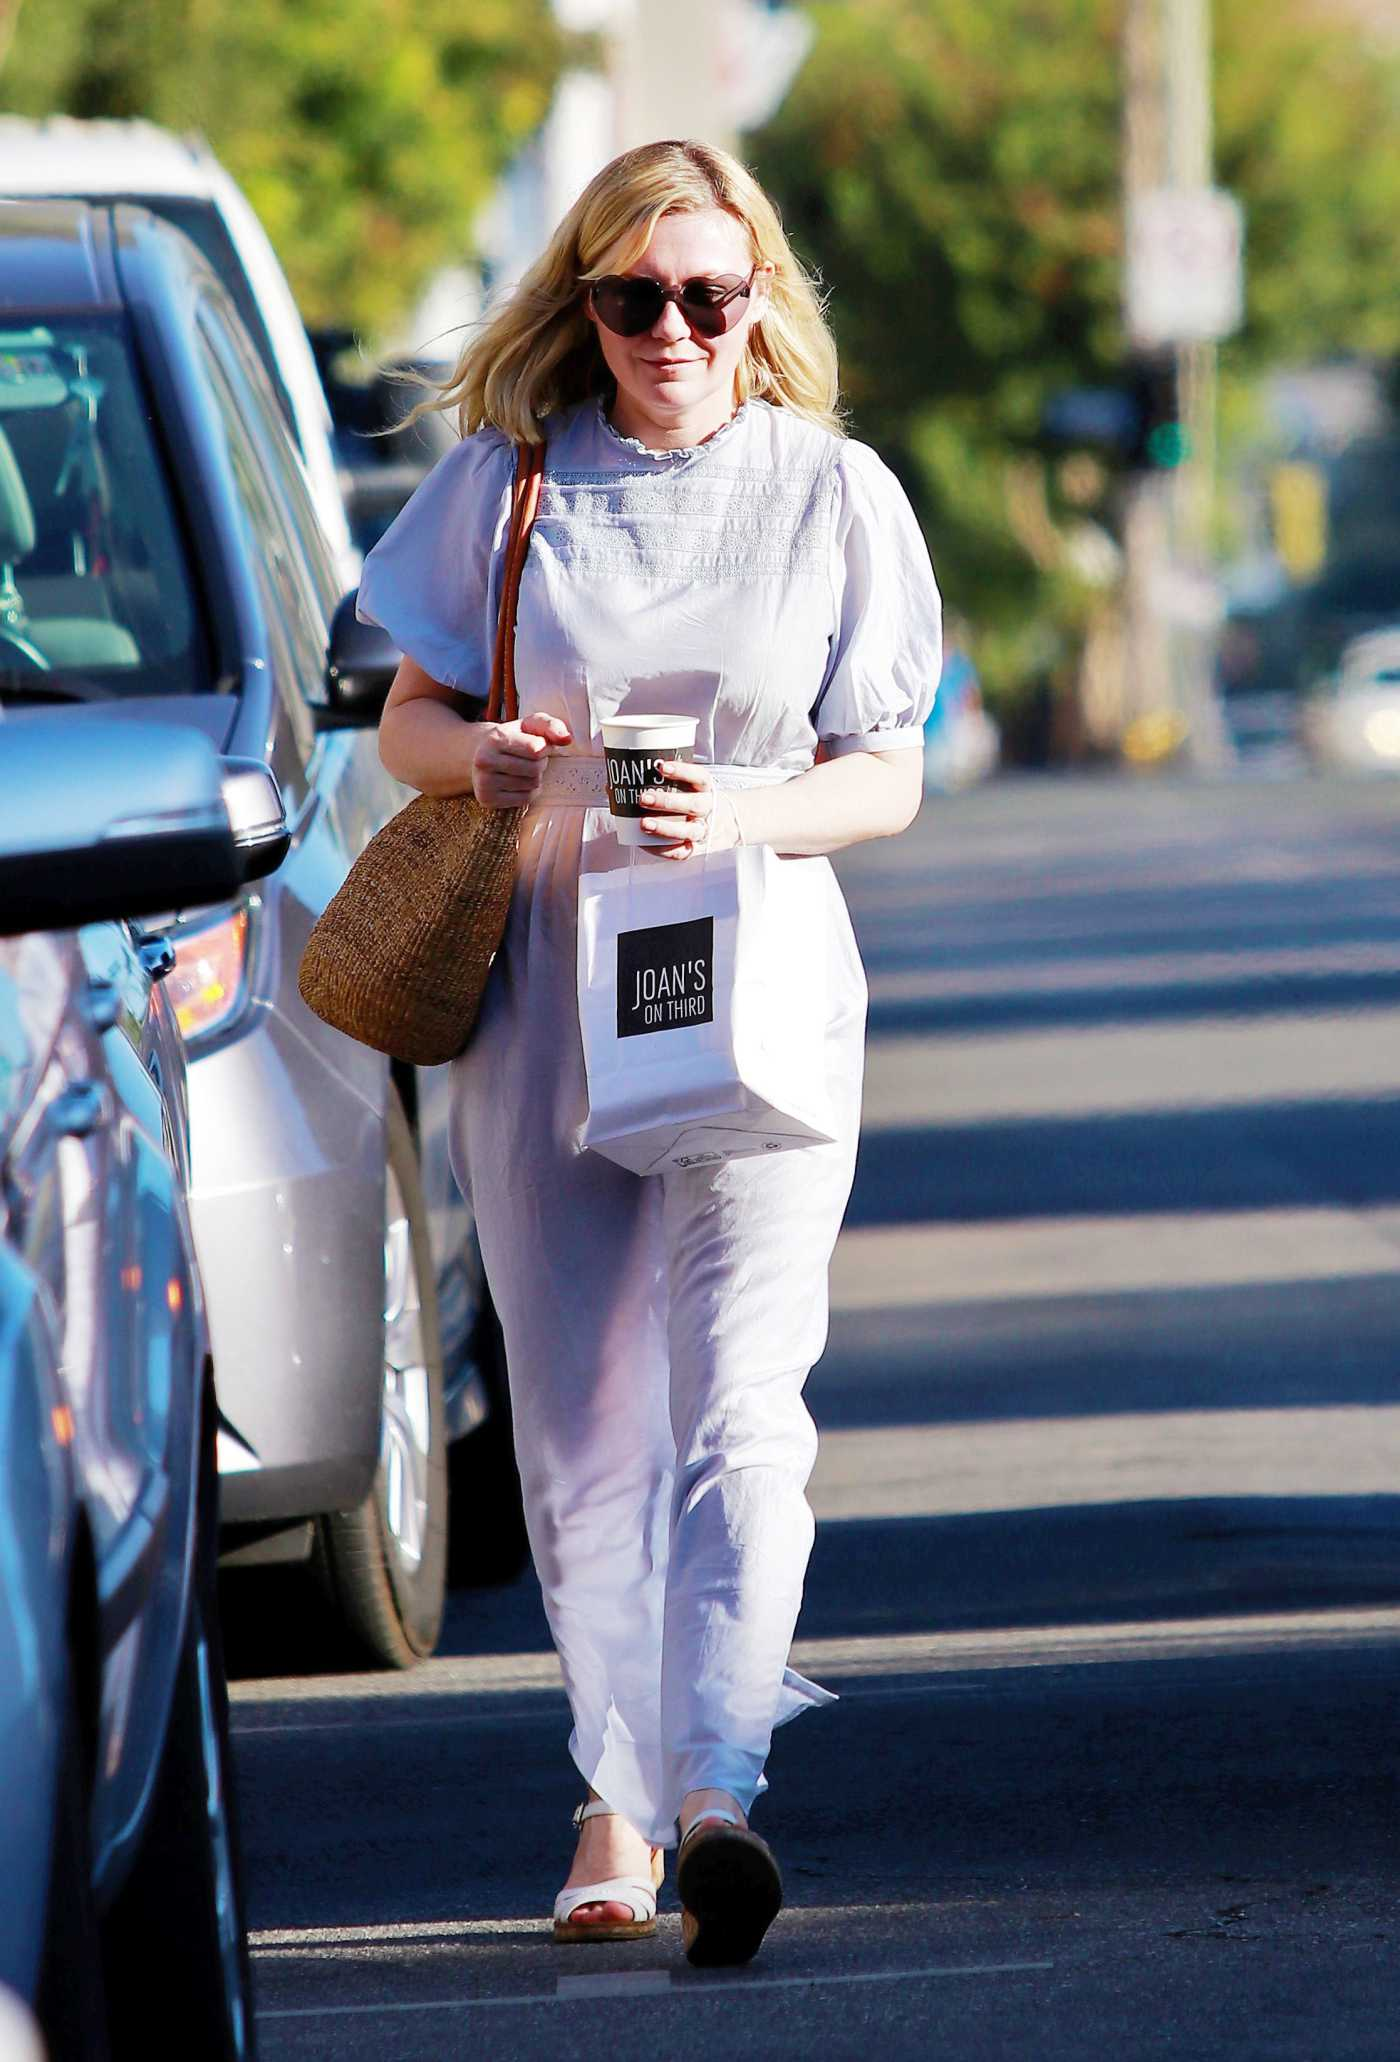 Kirsten Dunst Out for a Coffee at Jones on Third in LA 11/09/2019